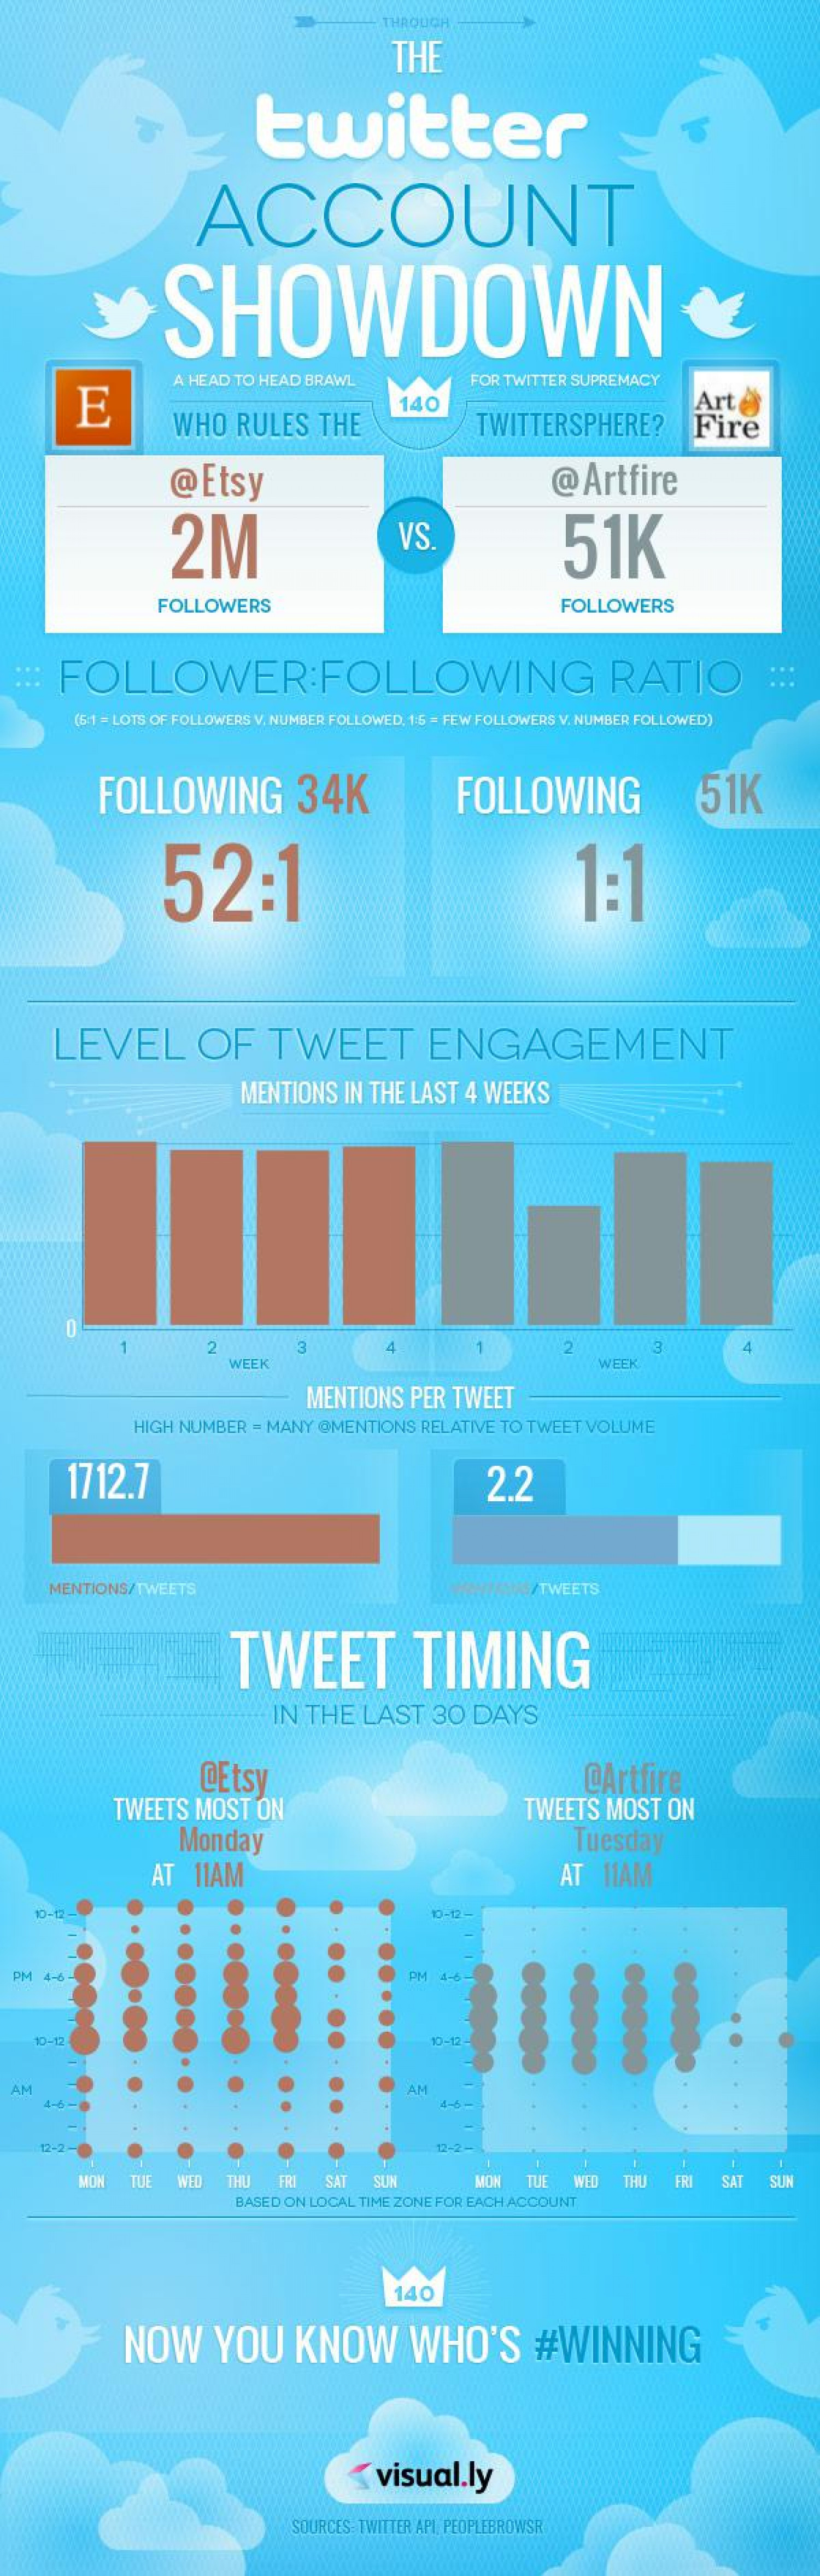 Etsy/Artfire Twitter Showdown Infographic